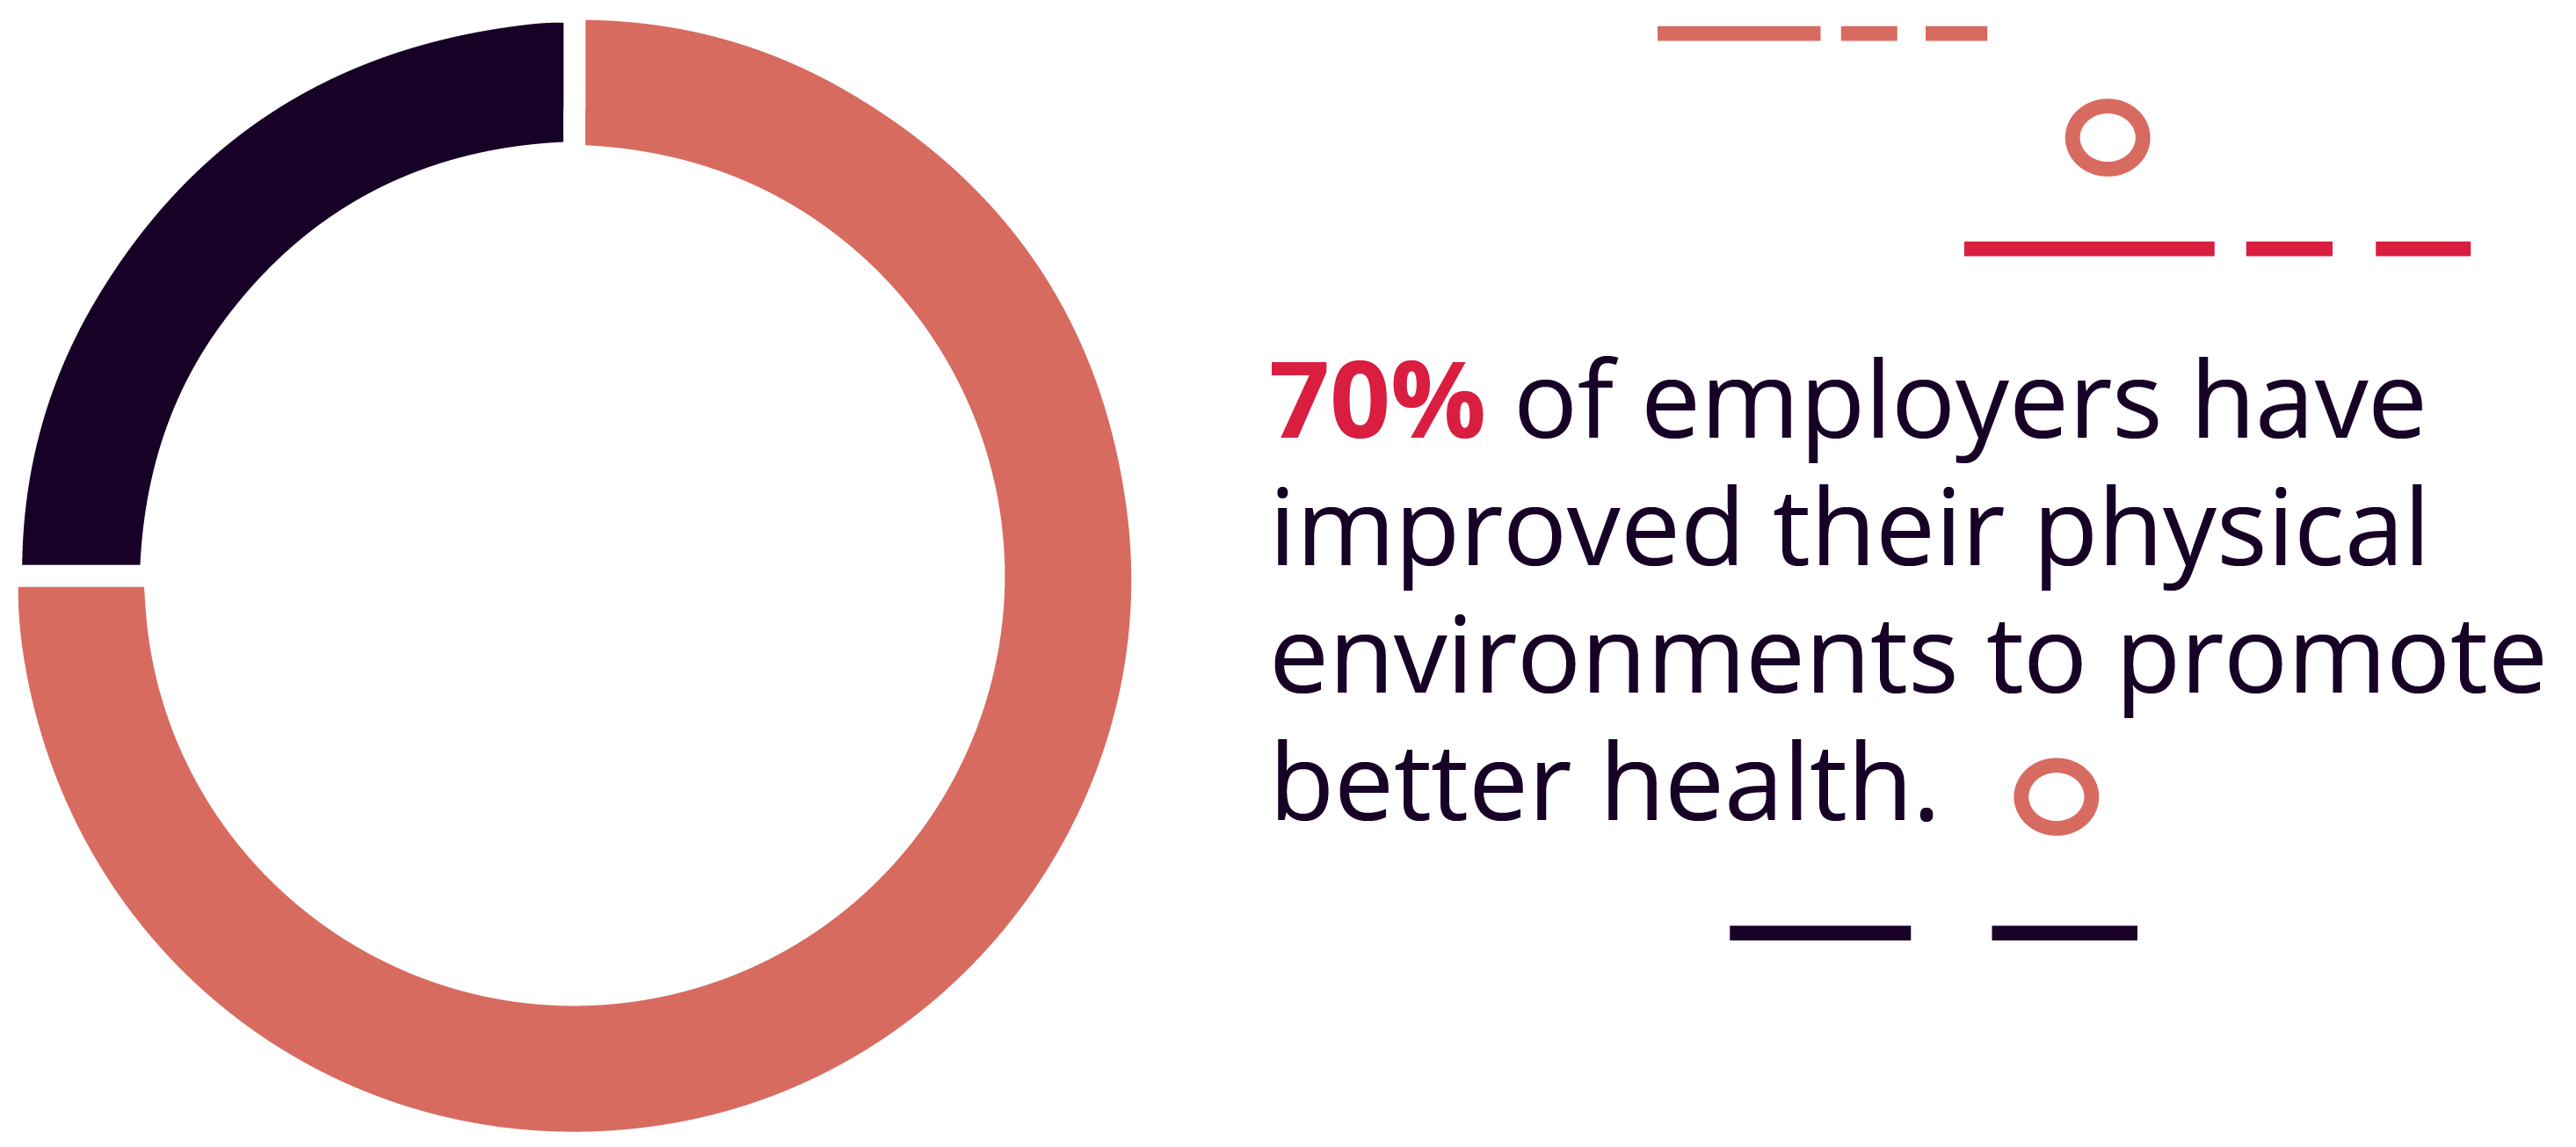 70% of employers have improved their physical environments to promote better health